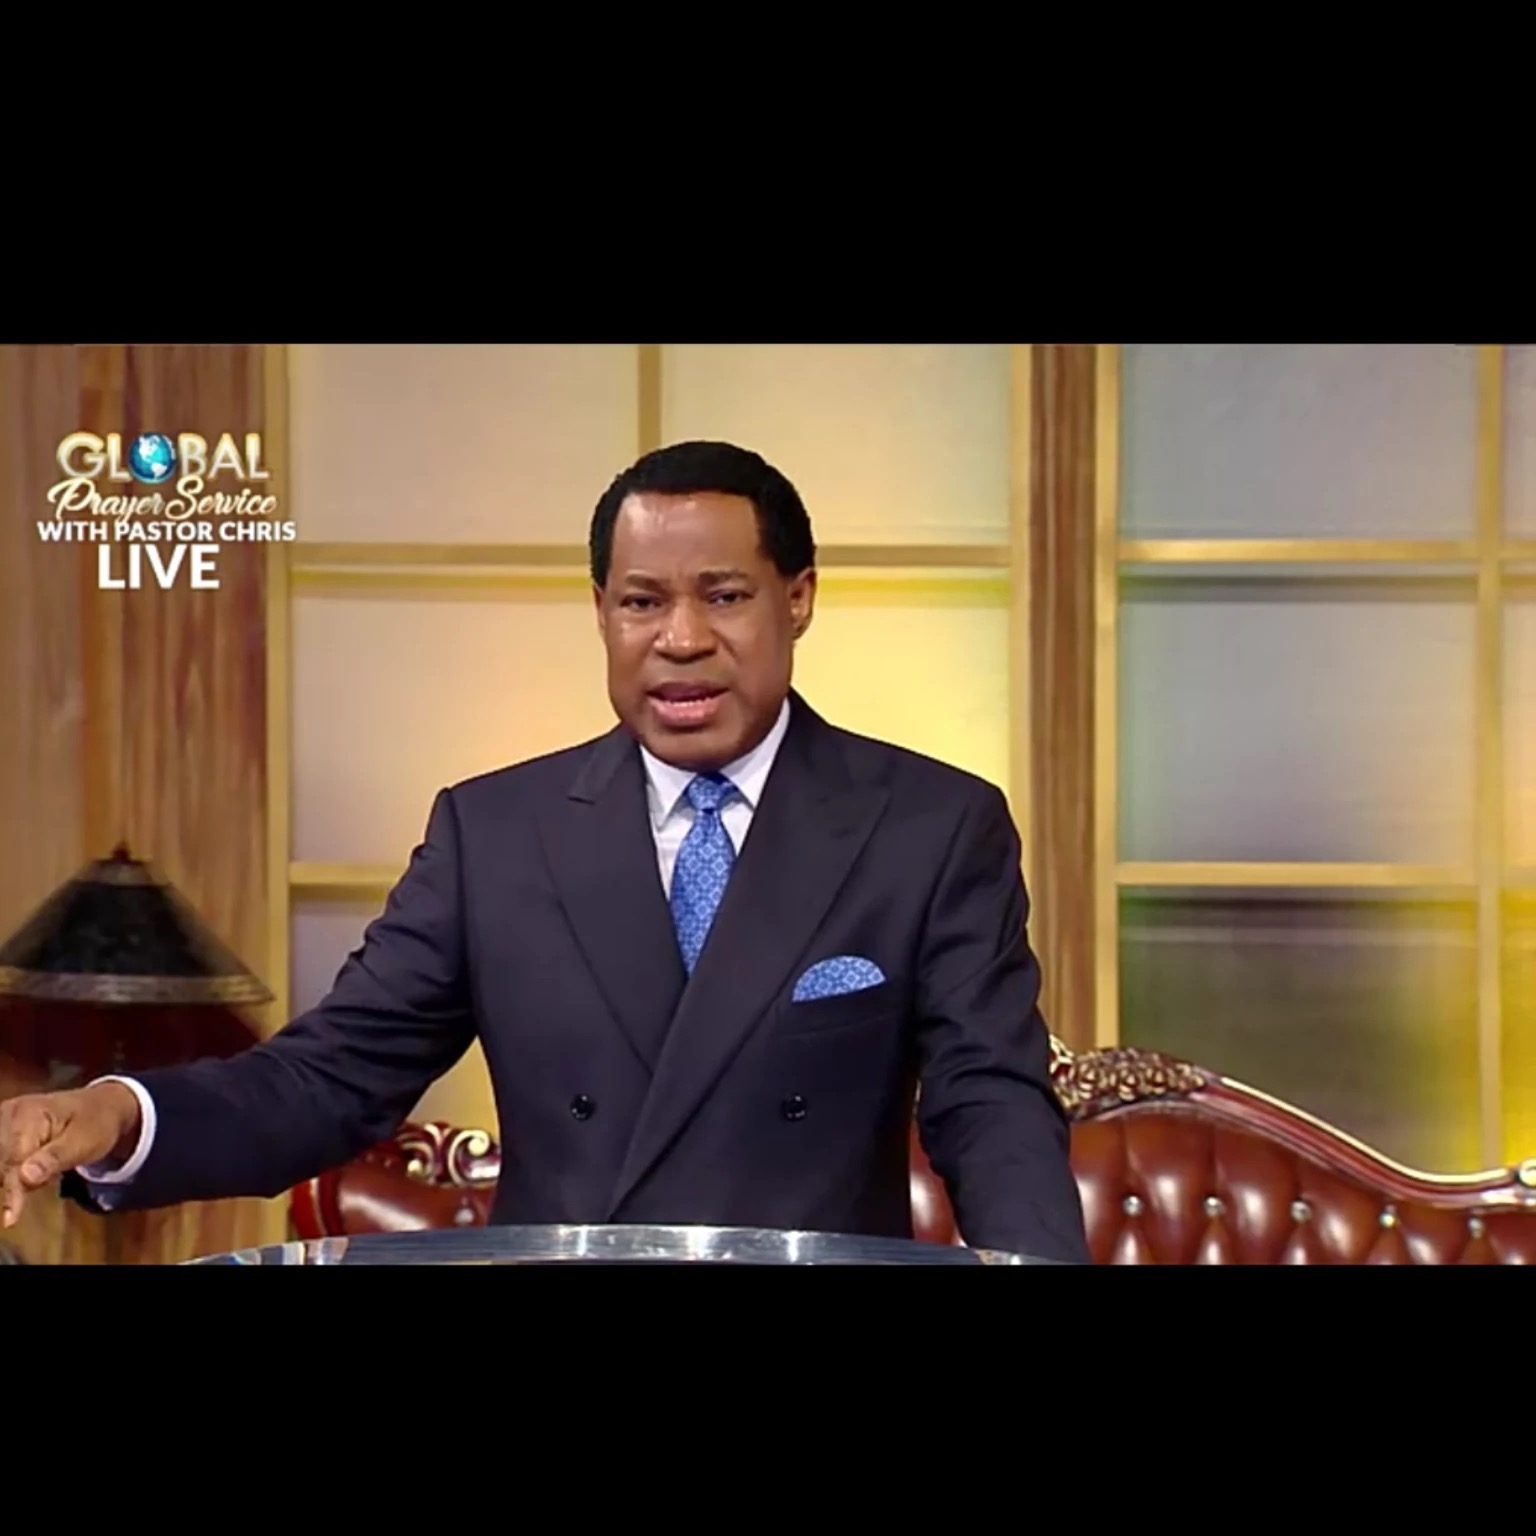 Global Prayer service with Our